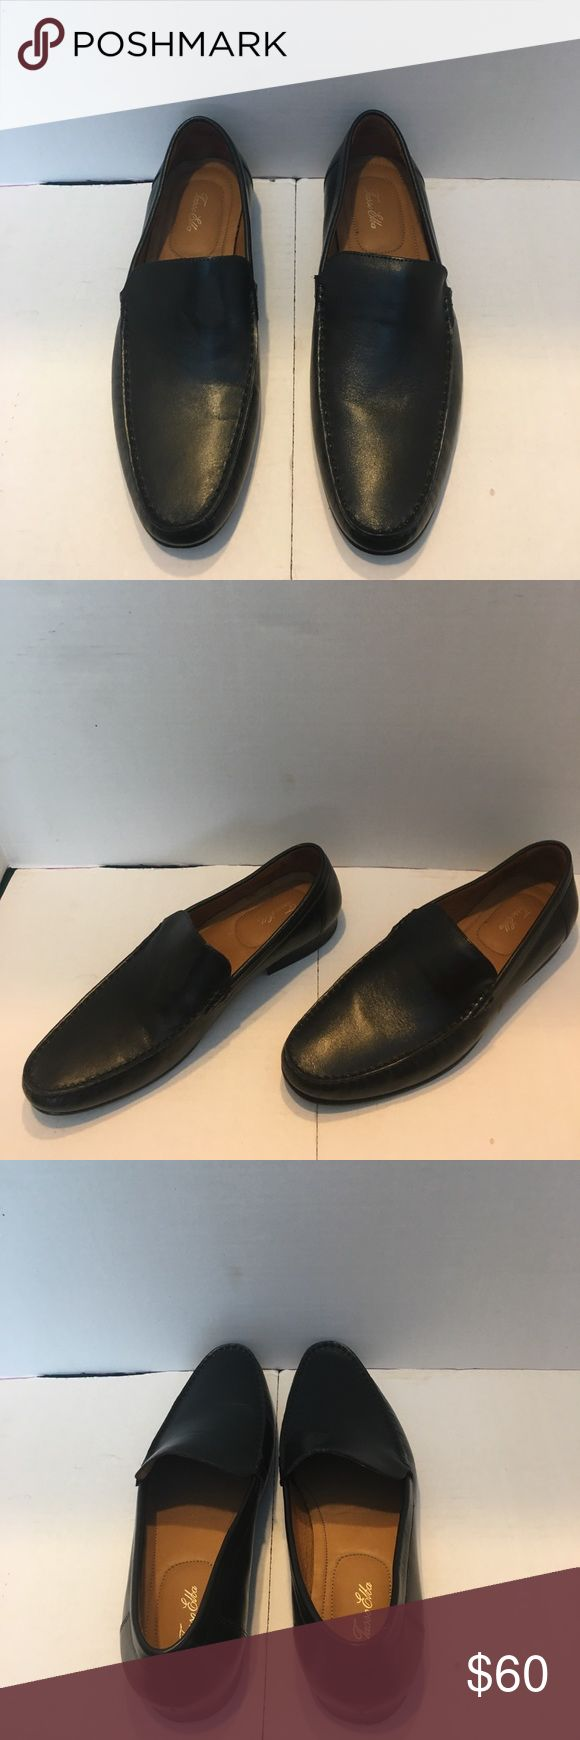 Tasso Elba Size 9 Sale Tasso Elba Size 9 Sale Men's Shoes. Worn once Tasso Elba Shoes Loafers & Slip-Ons